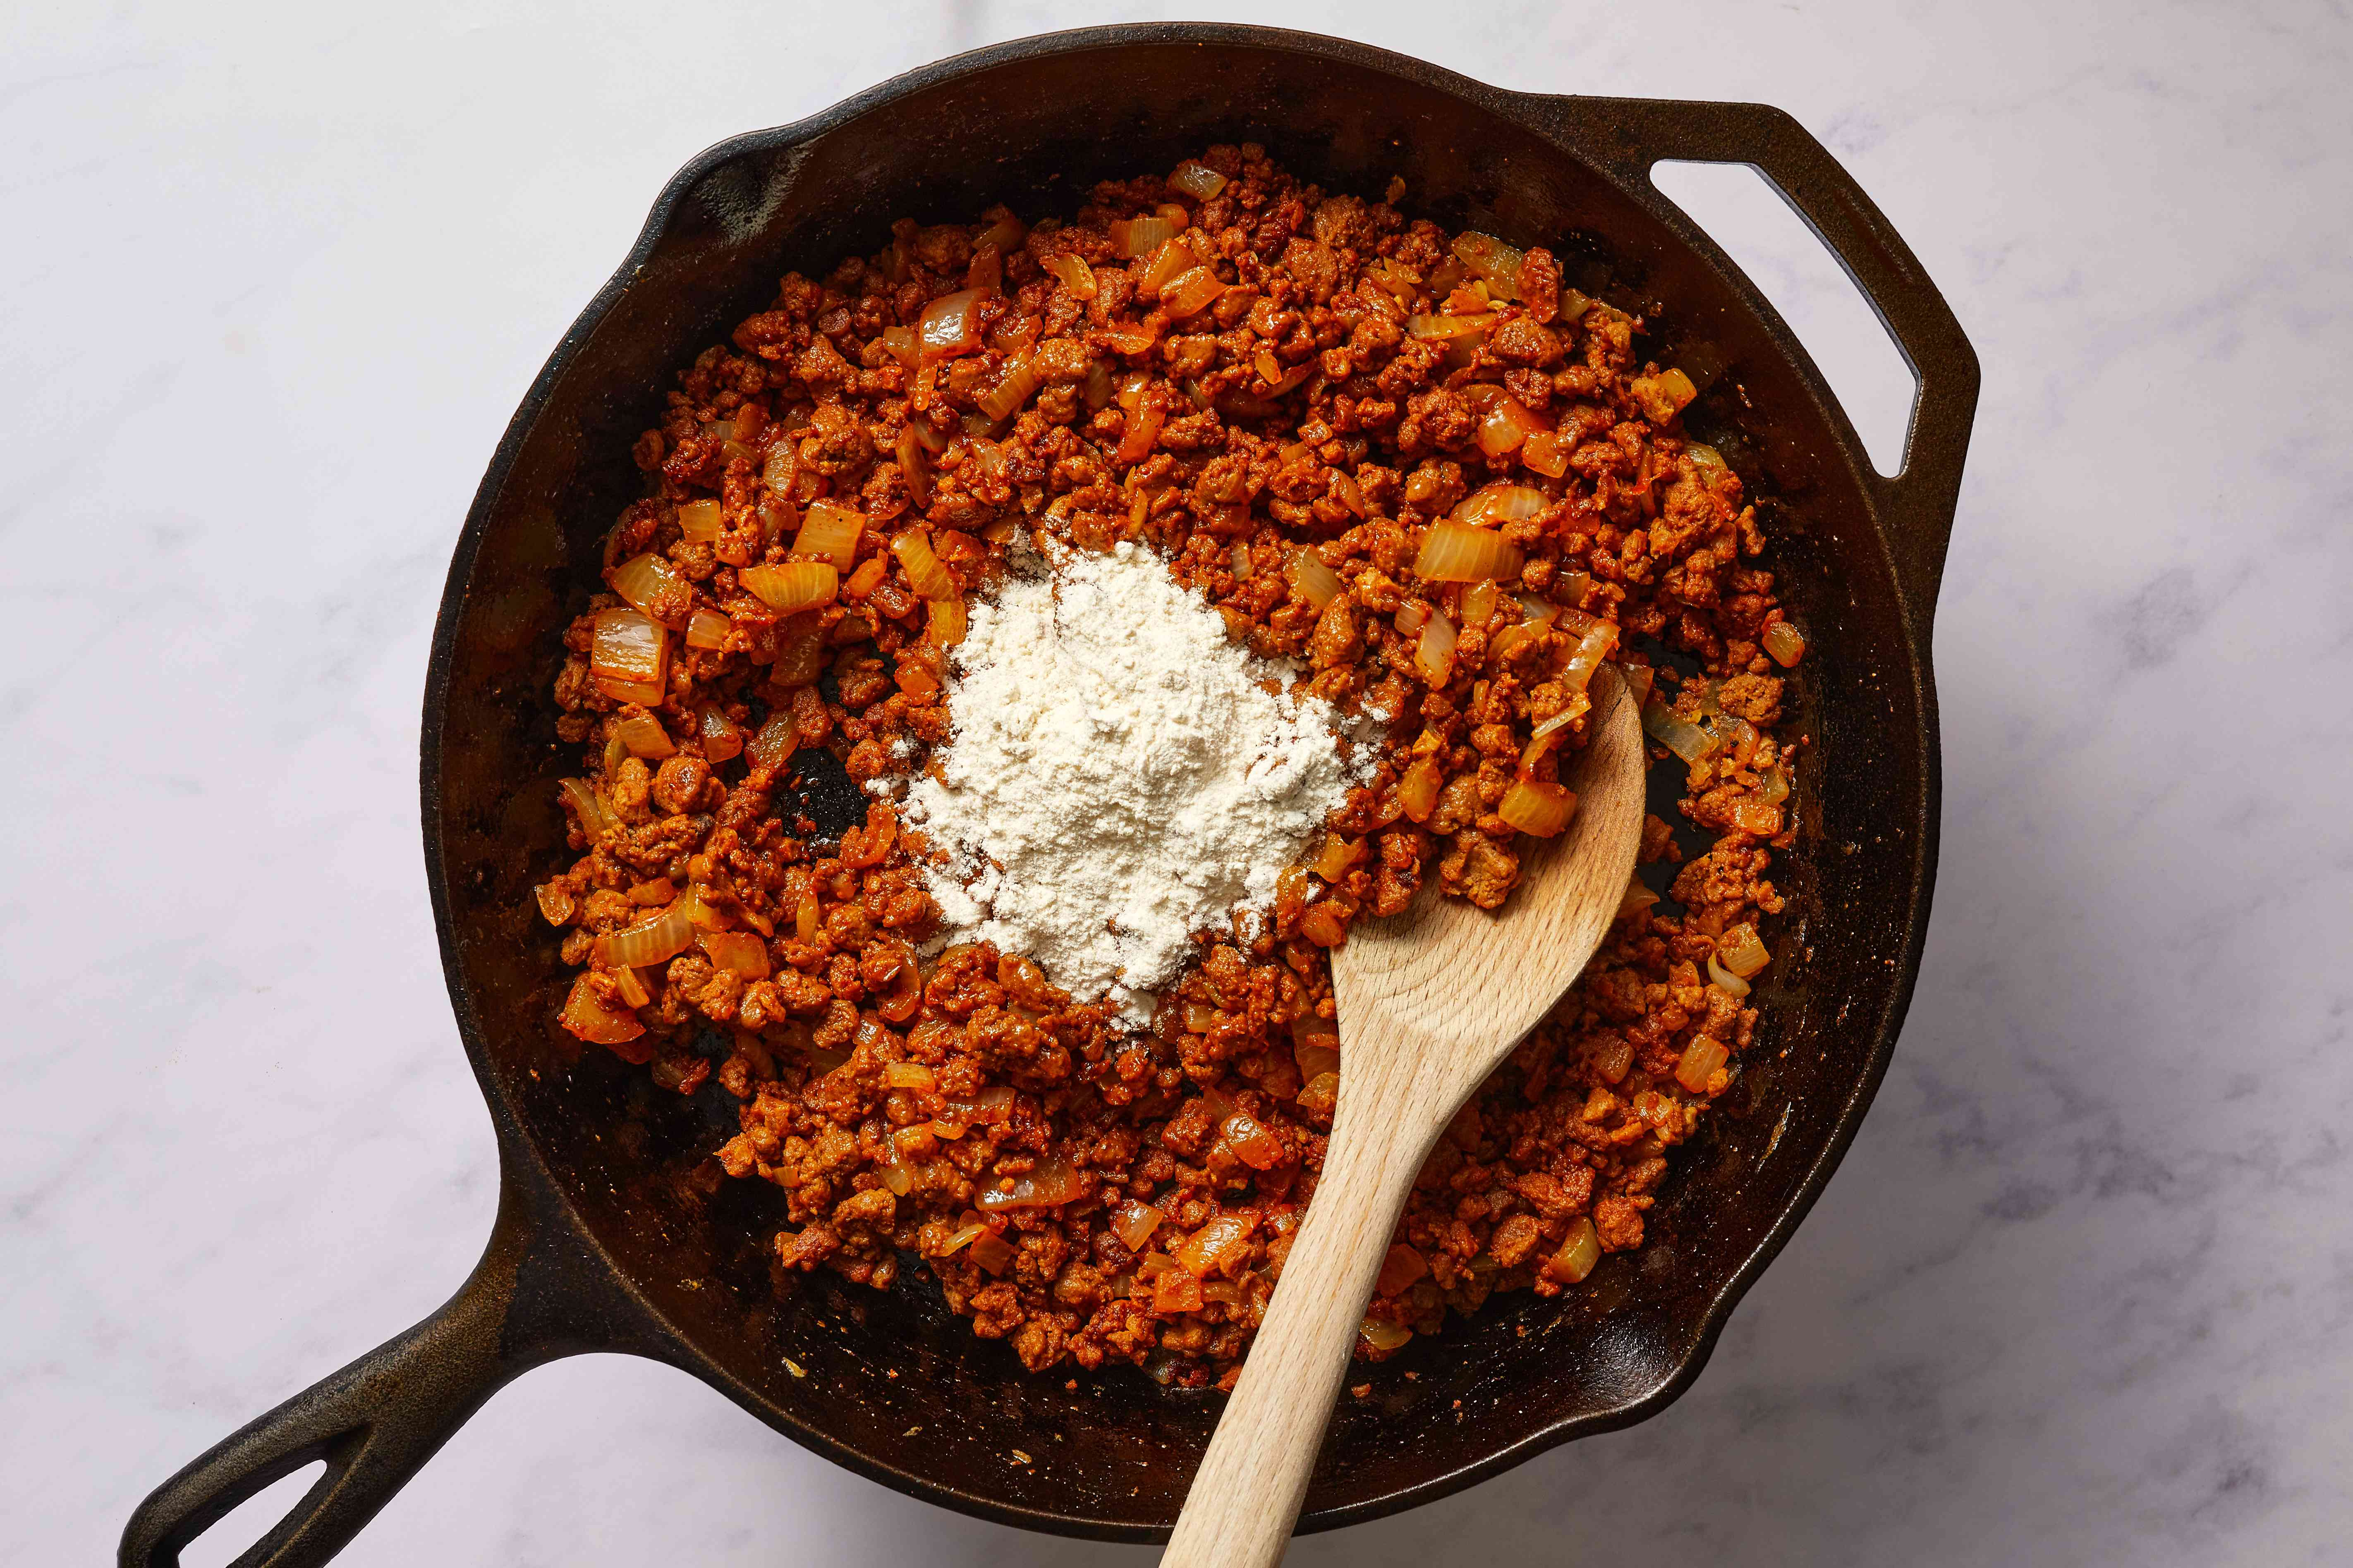 flour added to the meat mixture in the skillet